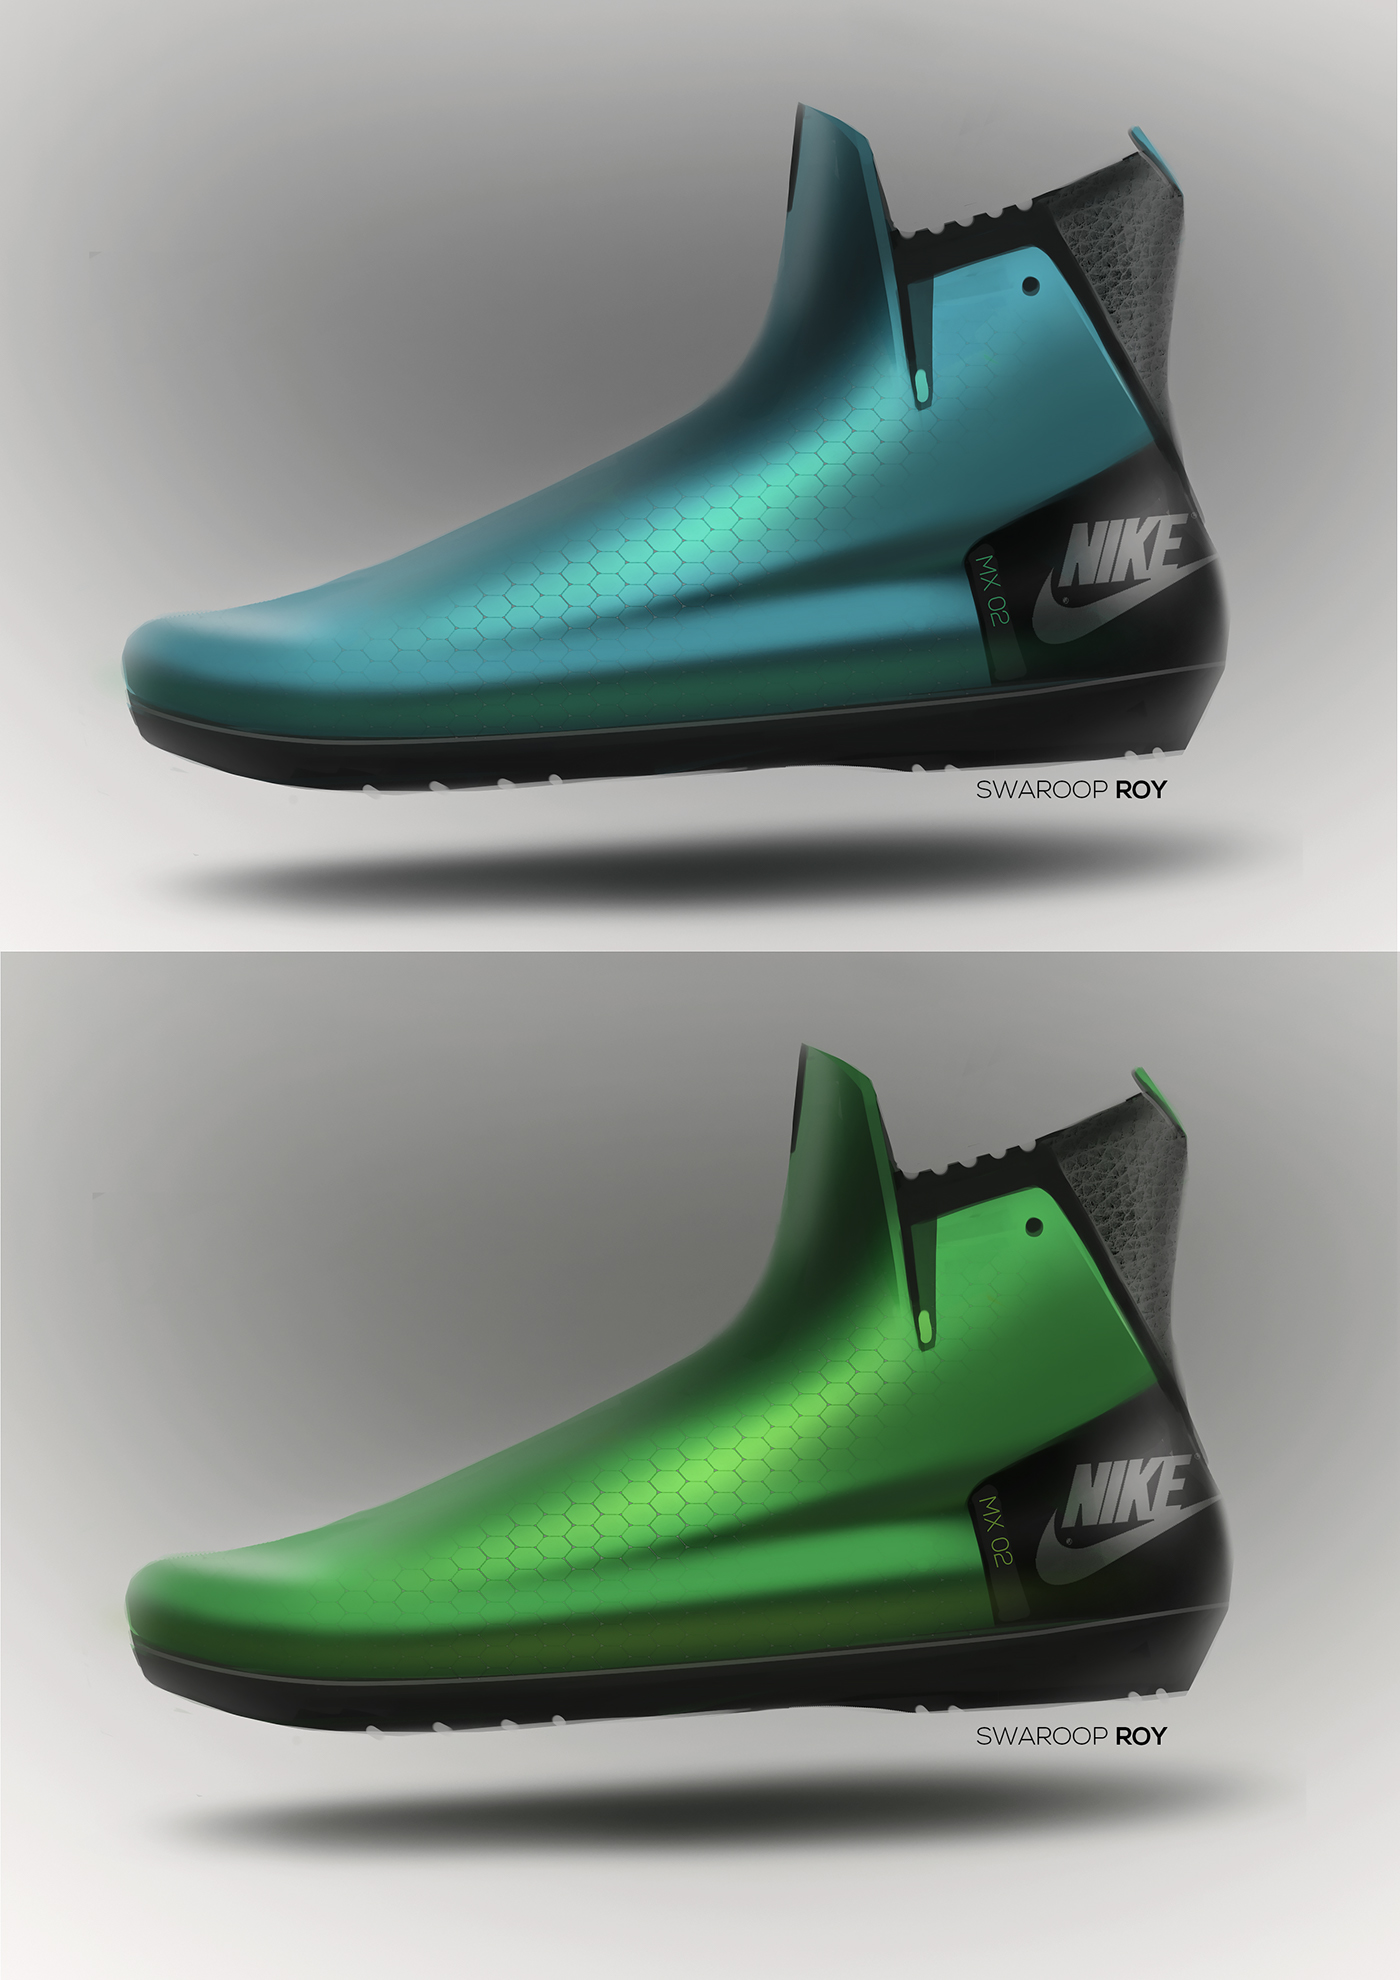 Shoe Design on